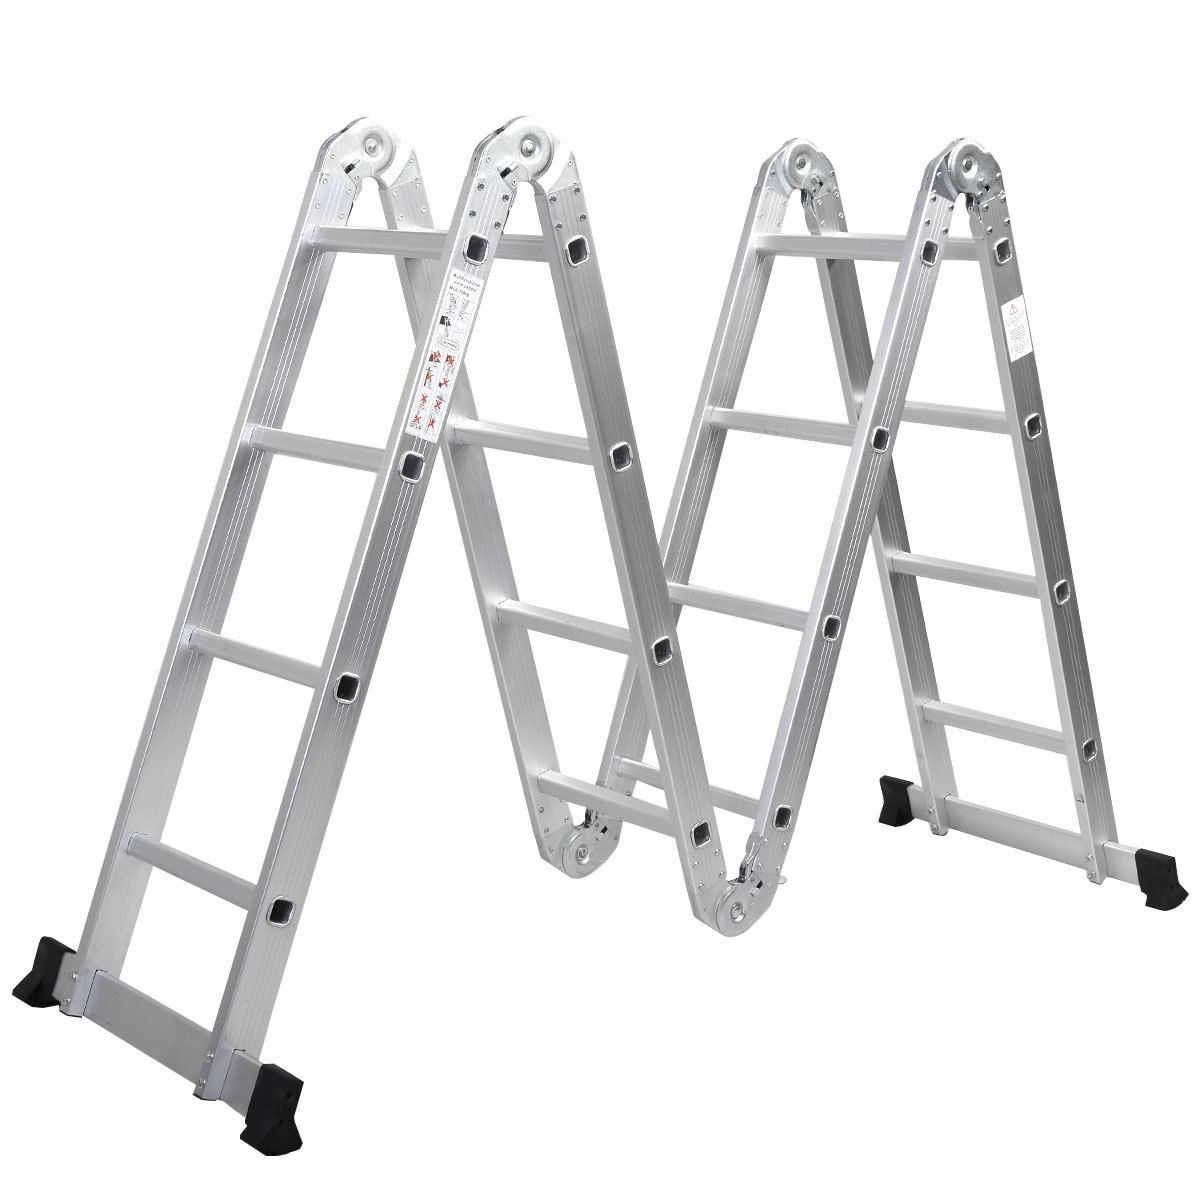 Zimtown 15.5FT Multi Purpose Aluminum Folding Step Ladder Scaffold Extendable Heavy Duty